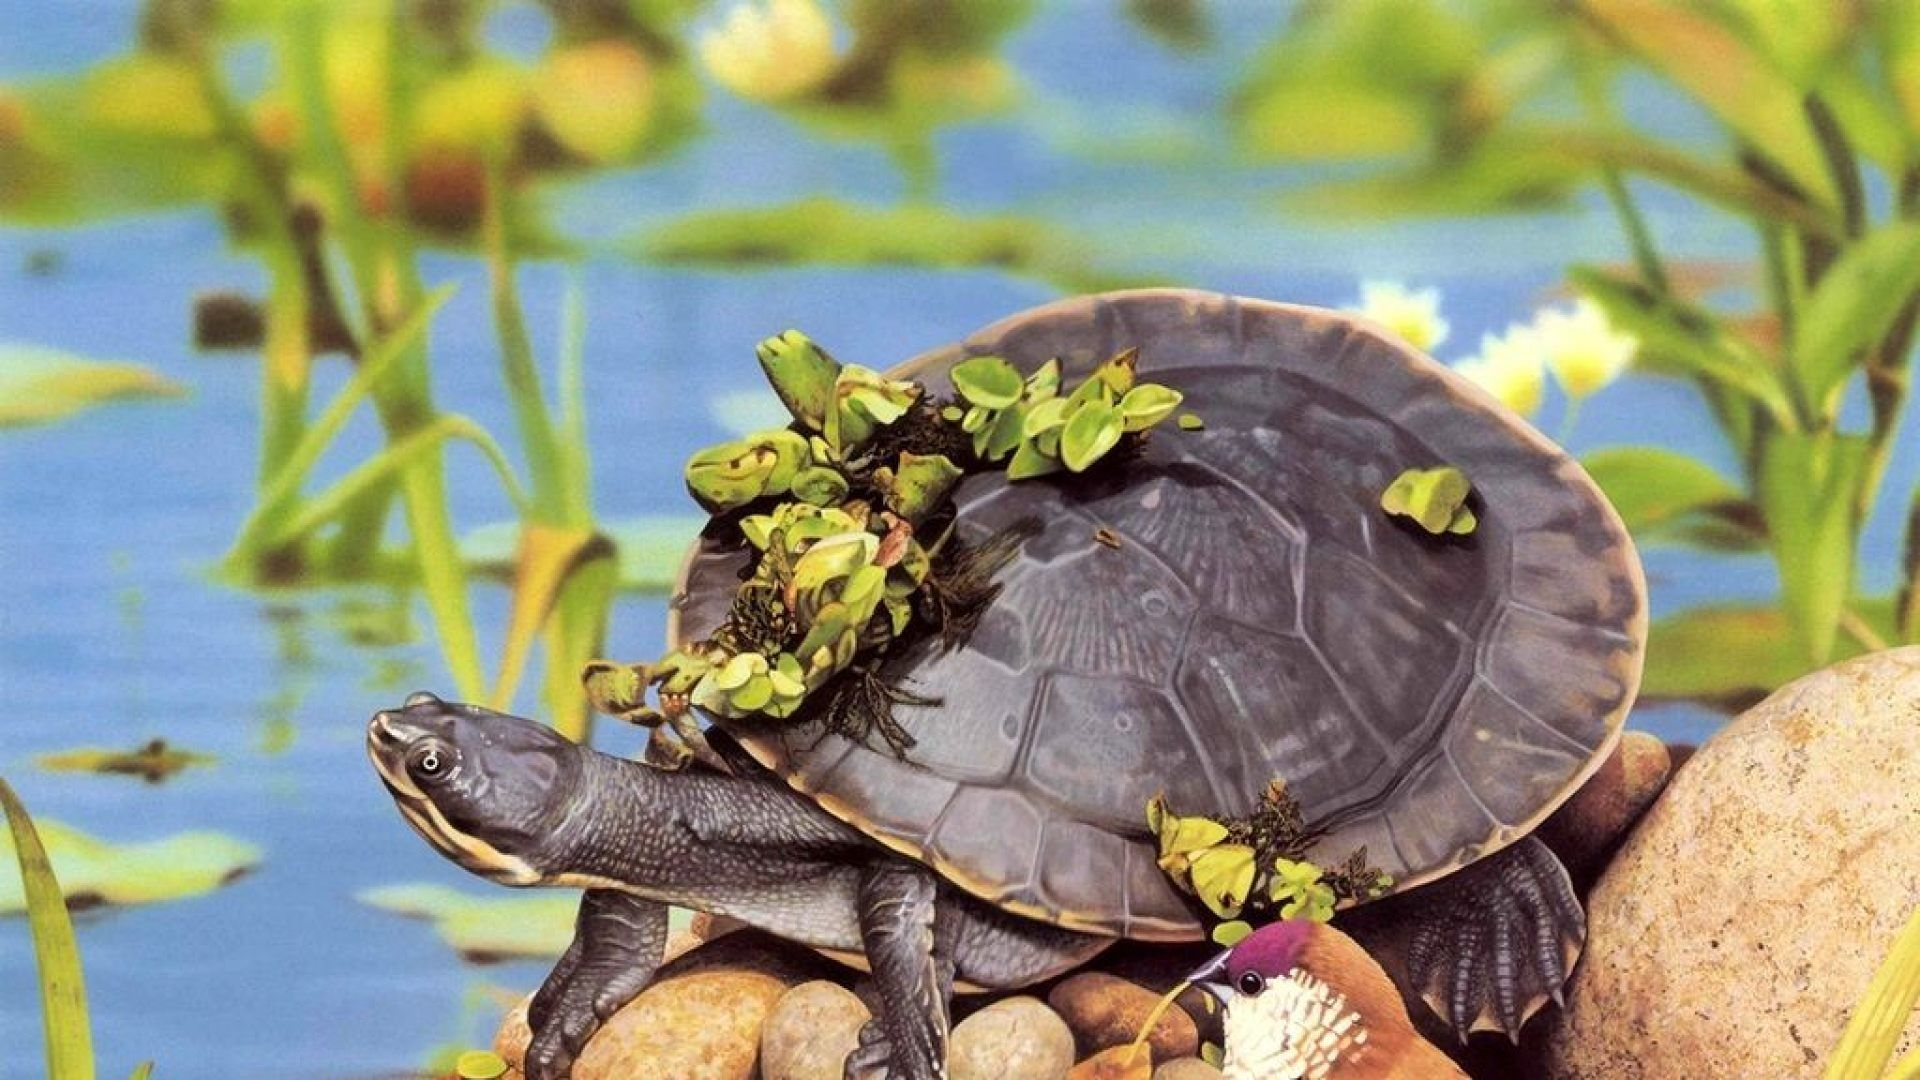 Photo Of A Turtle In Nature